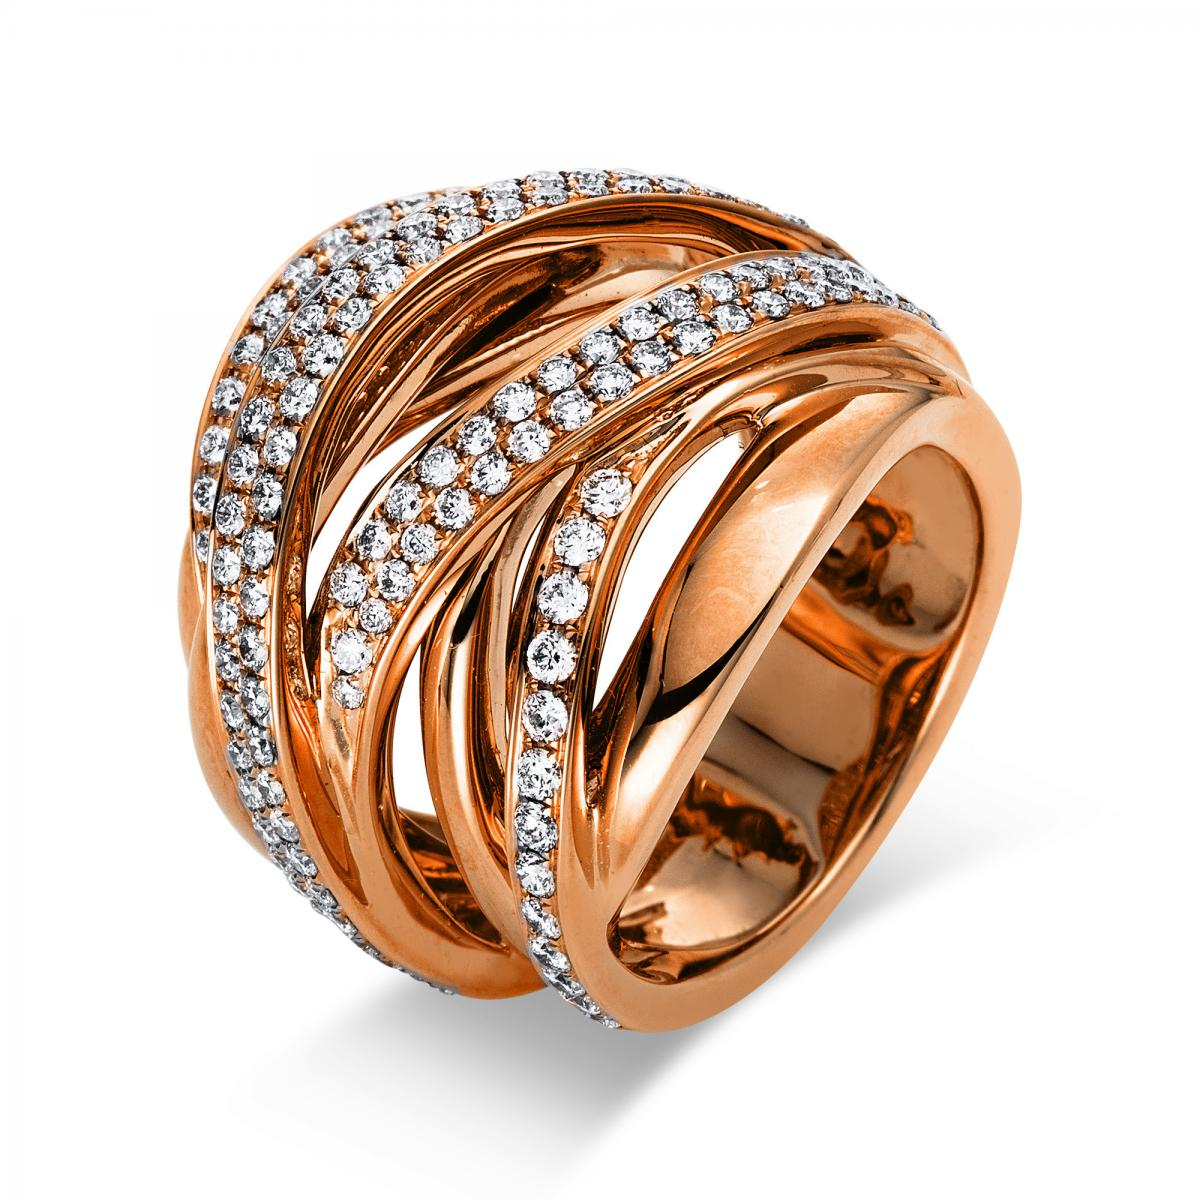 Ring 18 ct rosé gold with 153 brilliants ca. 1,51 ct, size 53